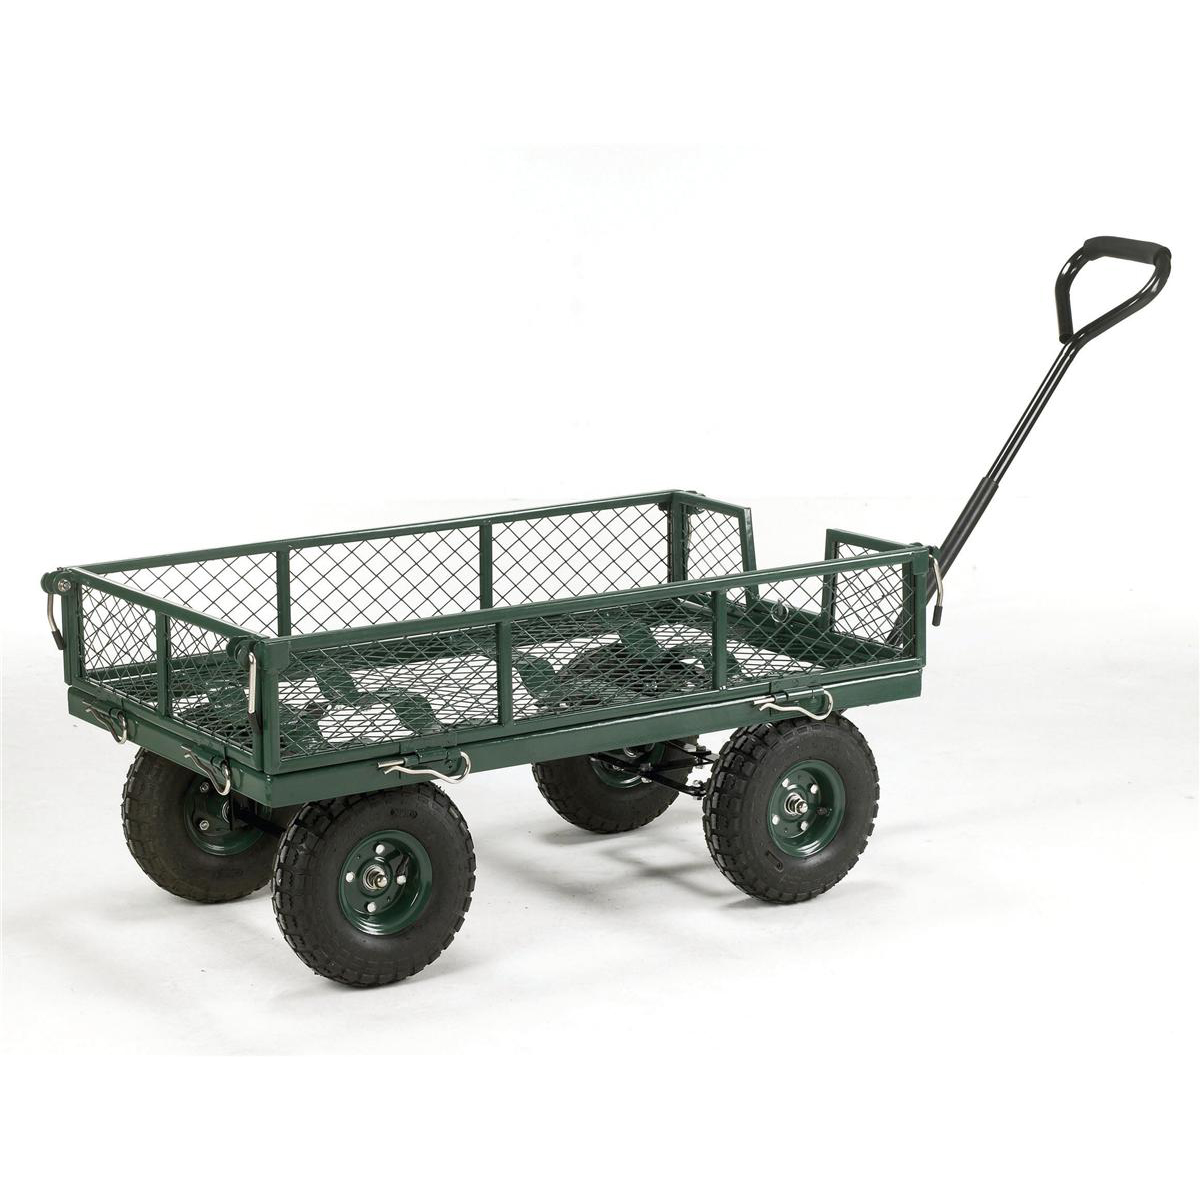 Barton Toptruck Four Sided Mesh Platform Capacity 250kg Pneumatic Wheels Green Ref TT4S